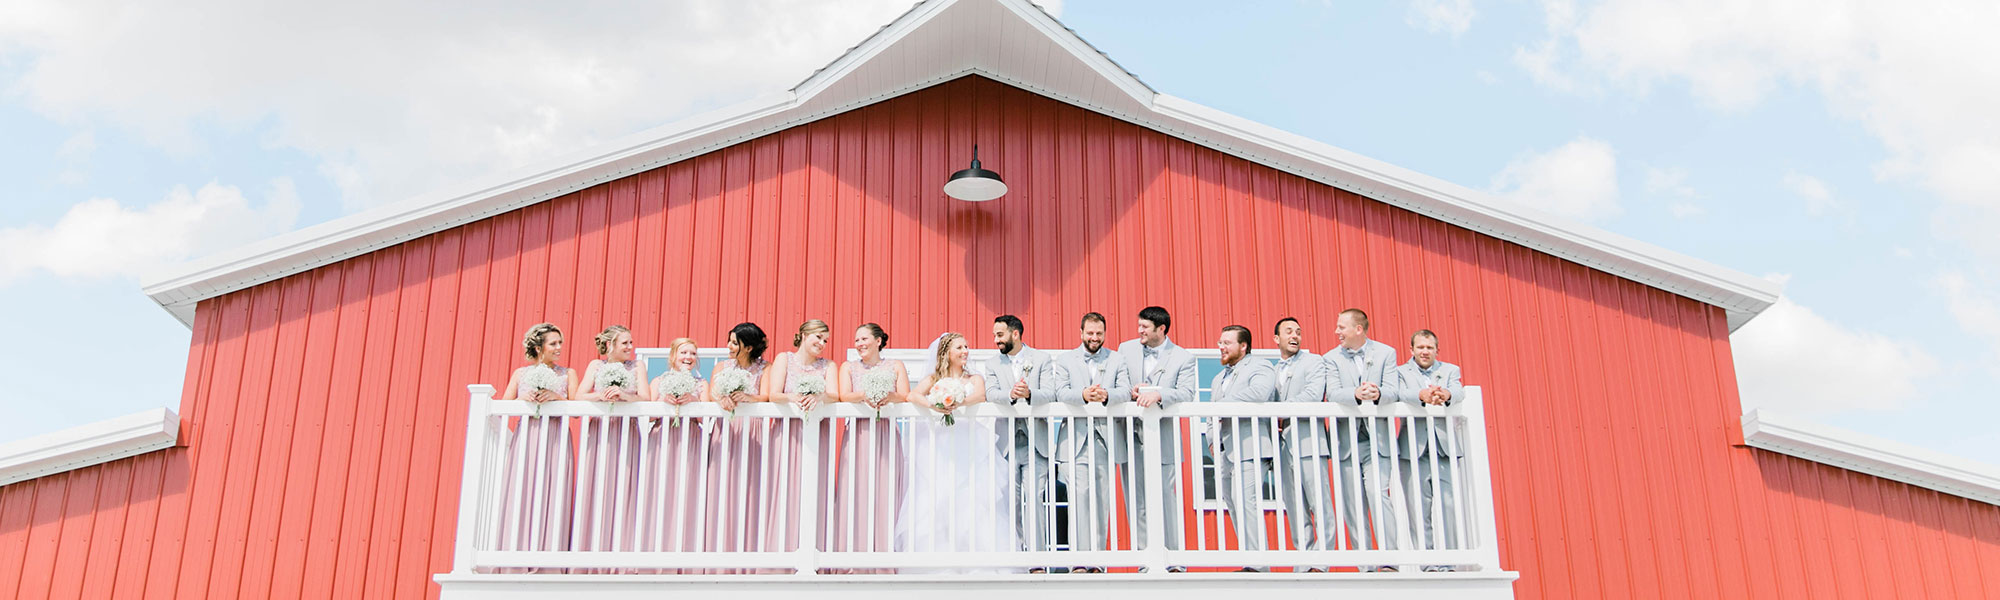 wedding party on the balcony of the barn